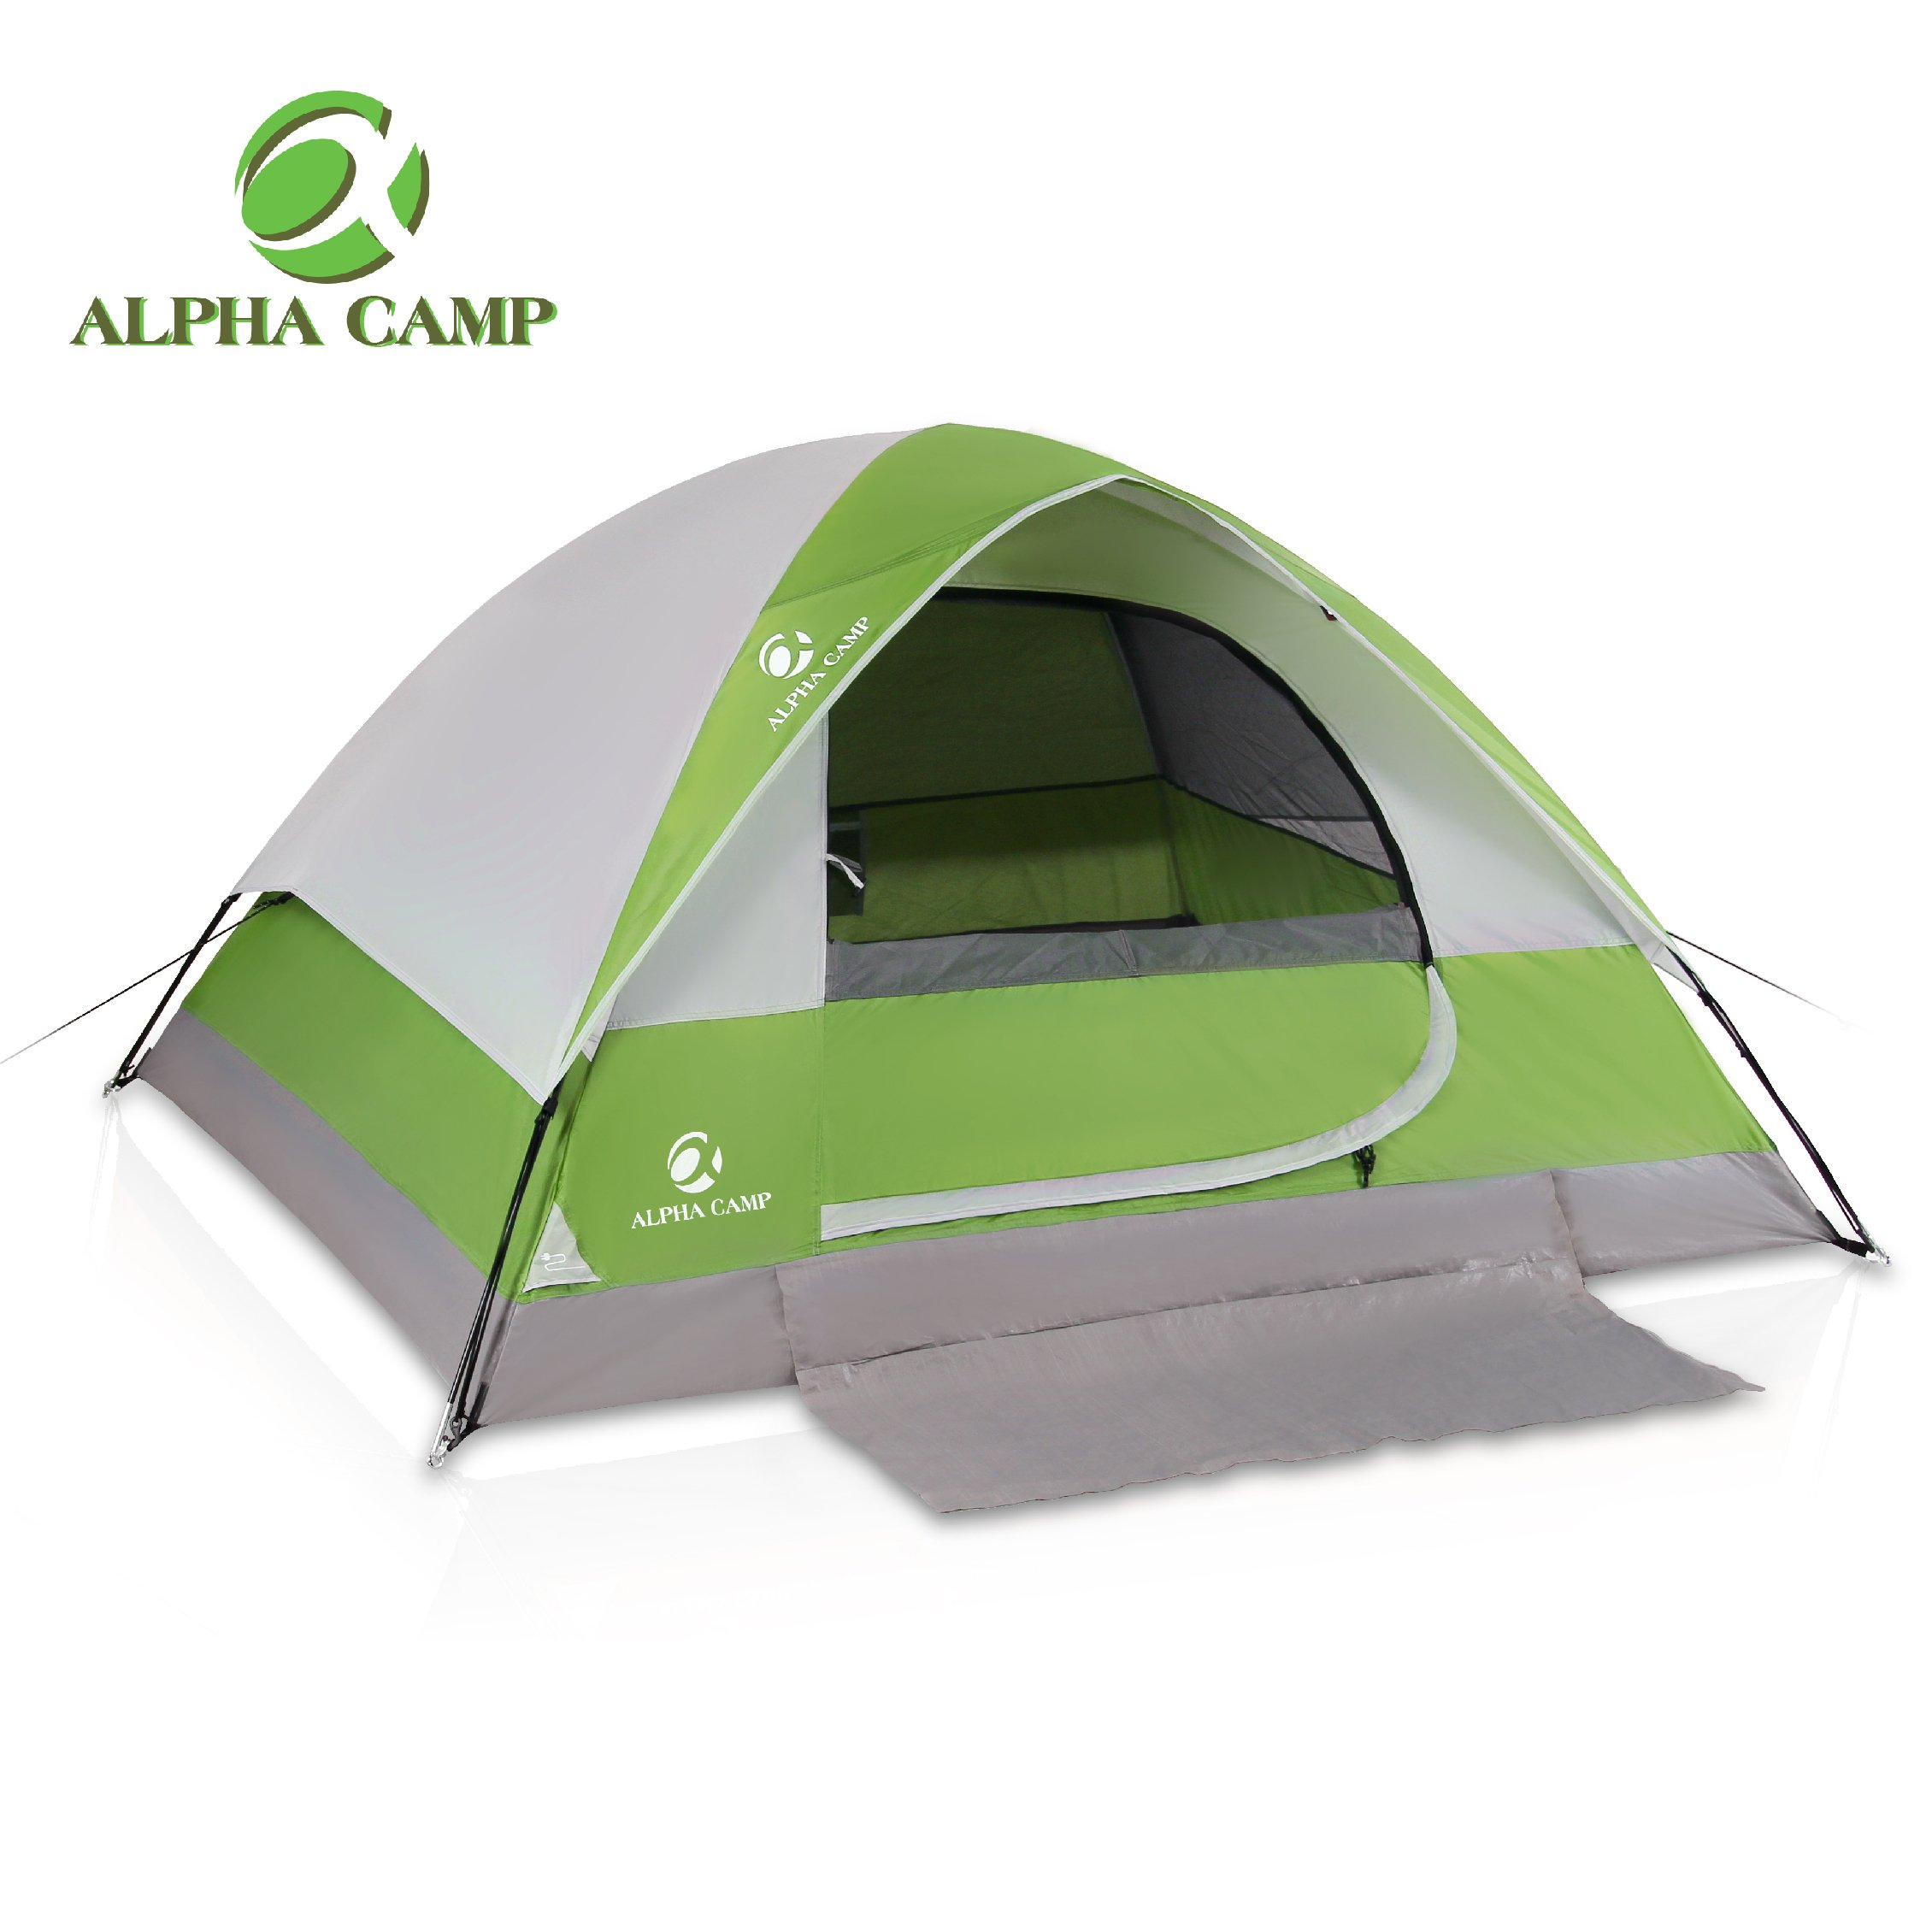 ALPHA CAMP 4 Person Camping Tent - 7' x 9' Green by ALPHA CAMP